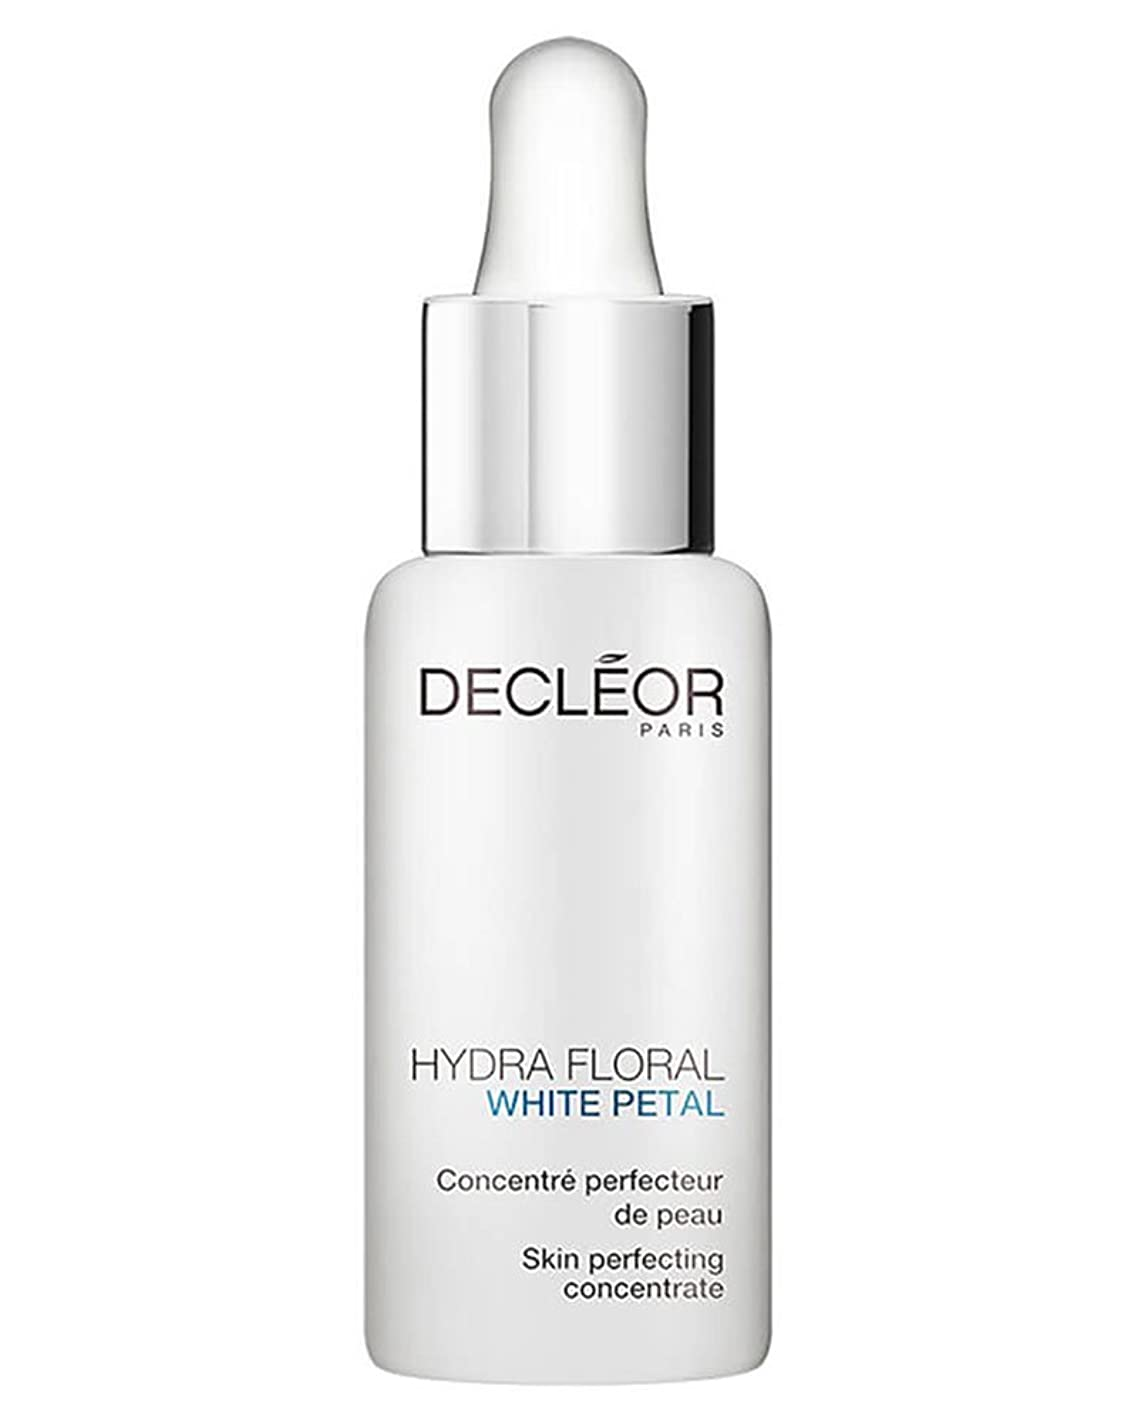 沼地遺棄された相対性理論デクレオール Hydra Floral White Petal Neroli & Sweet Orange Skin Perfecting Concentrate 30ml/1oz並行輸入品